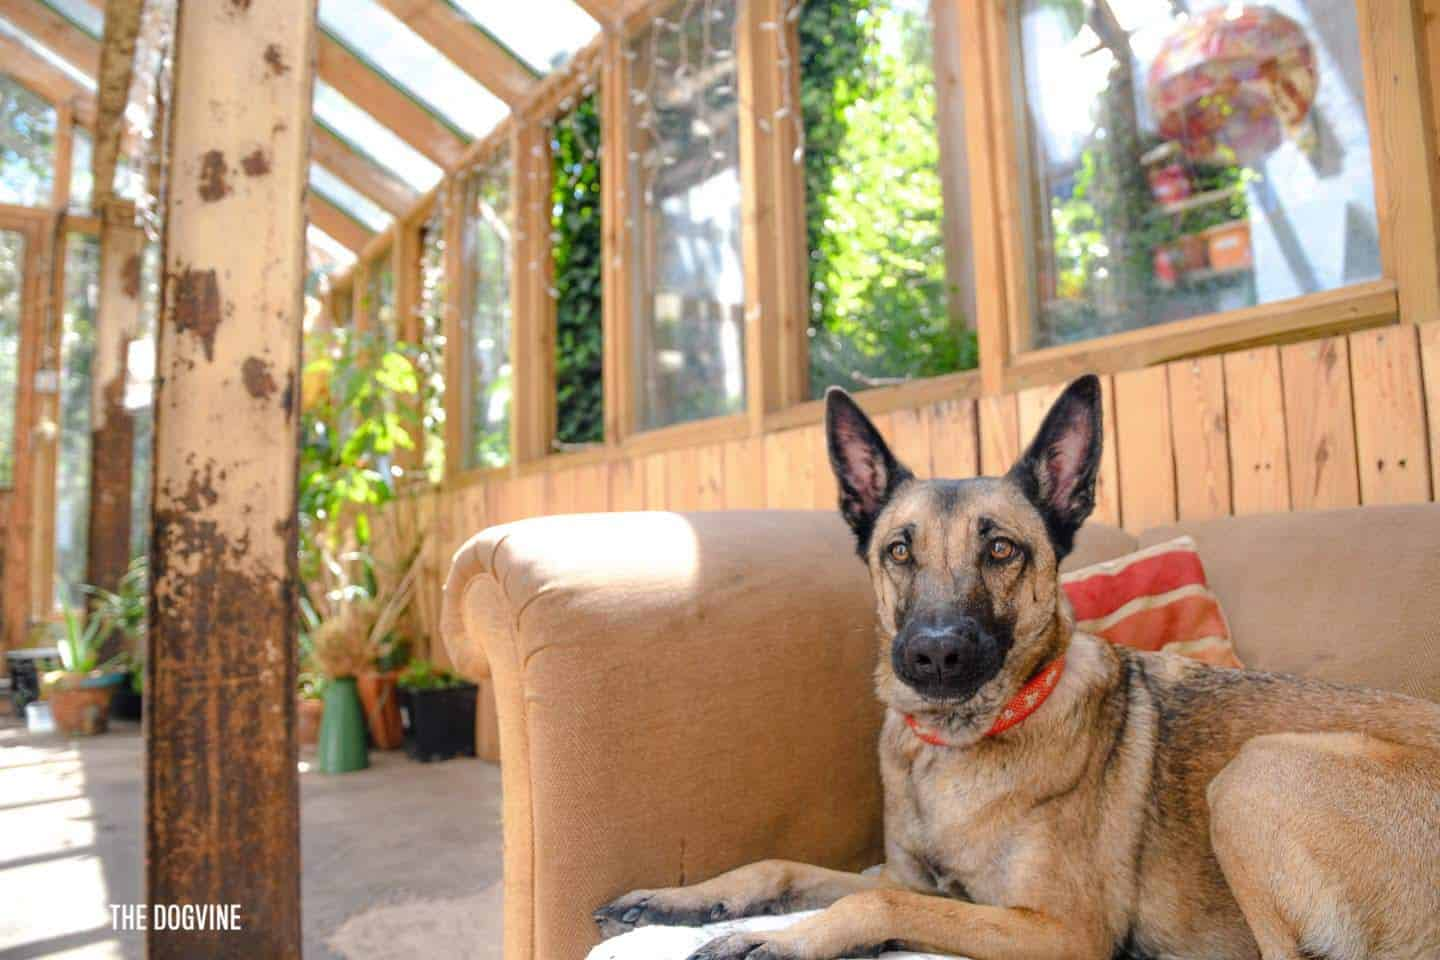 My Dog Friendly London By Lyra the Malinois - Dog Friendly Dalston and Hackney 10